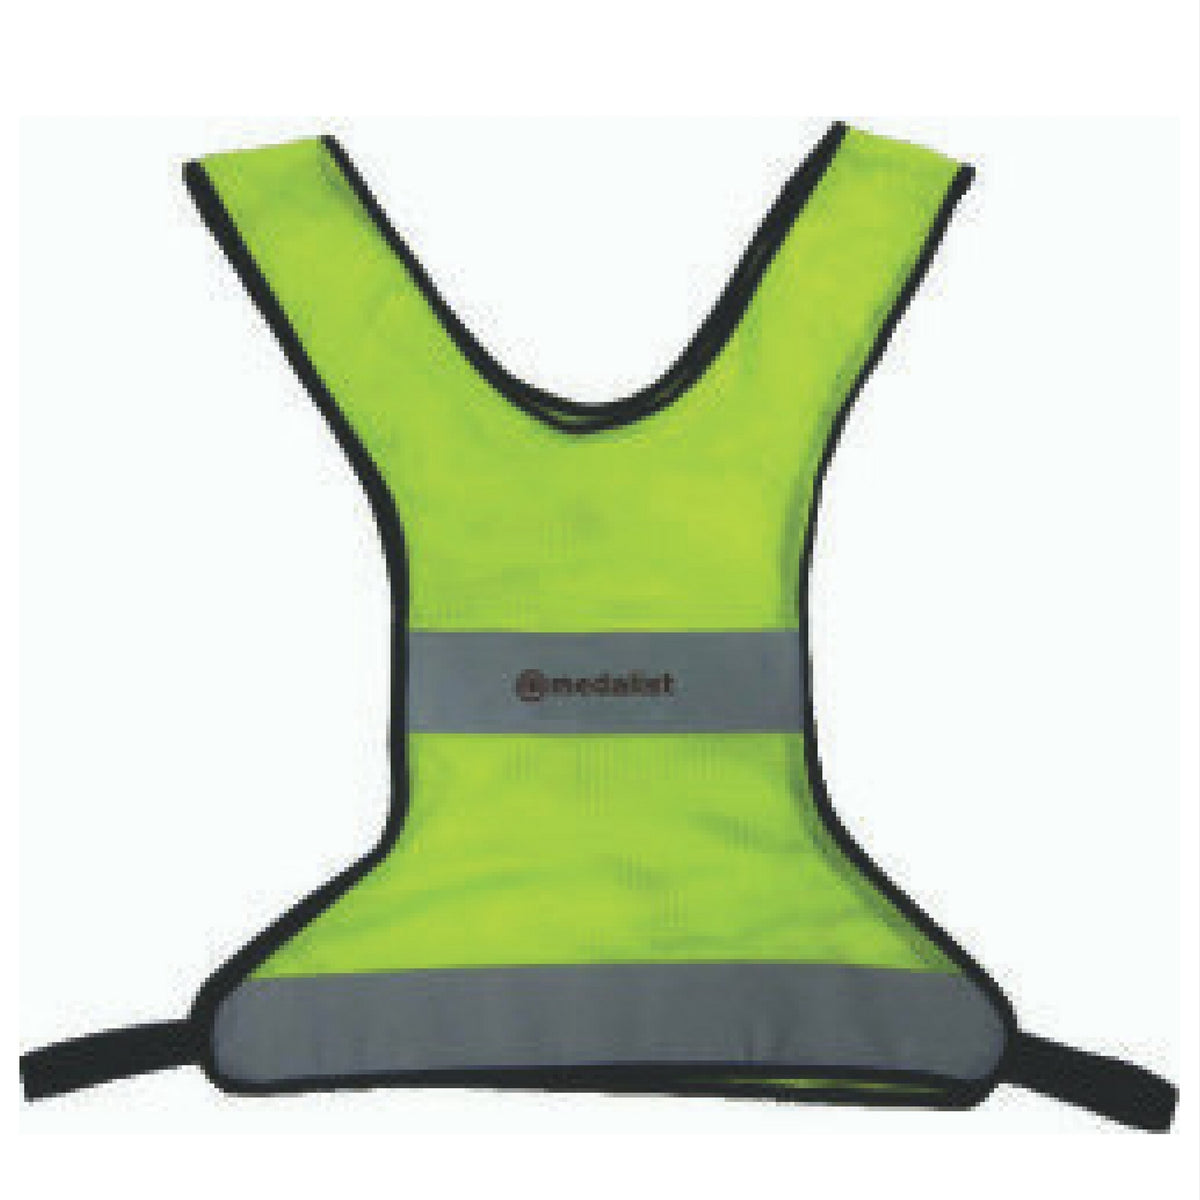 Medalist Reflective Vest - Universal Sizing